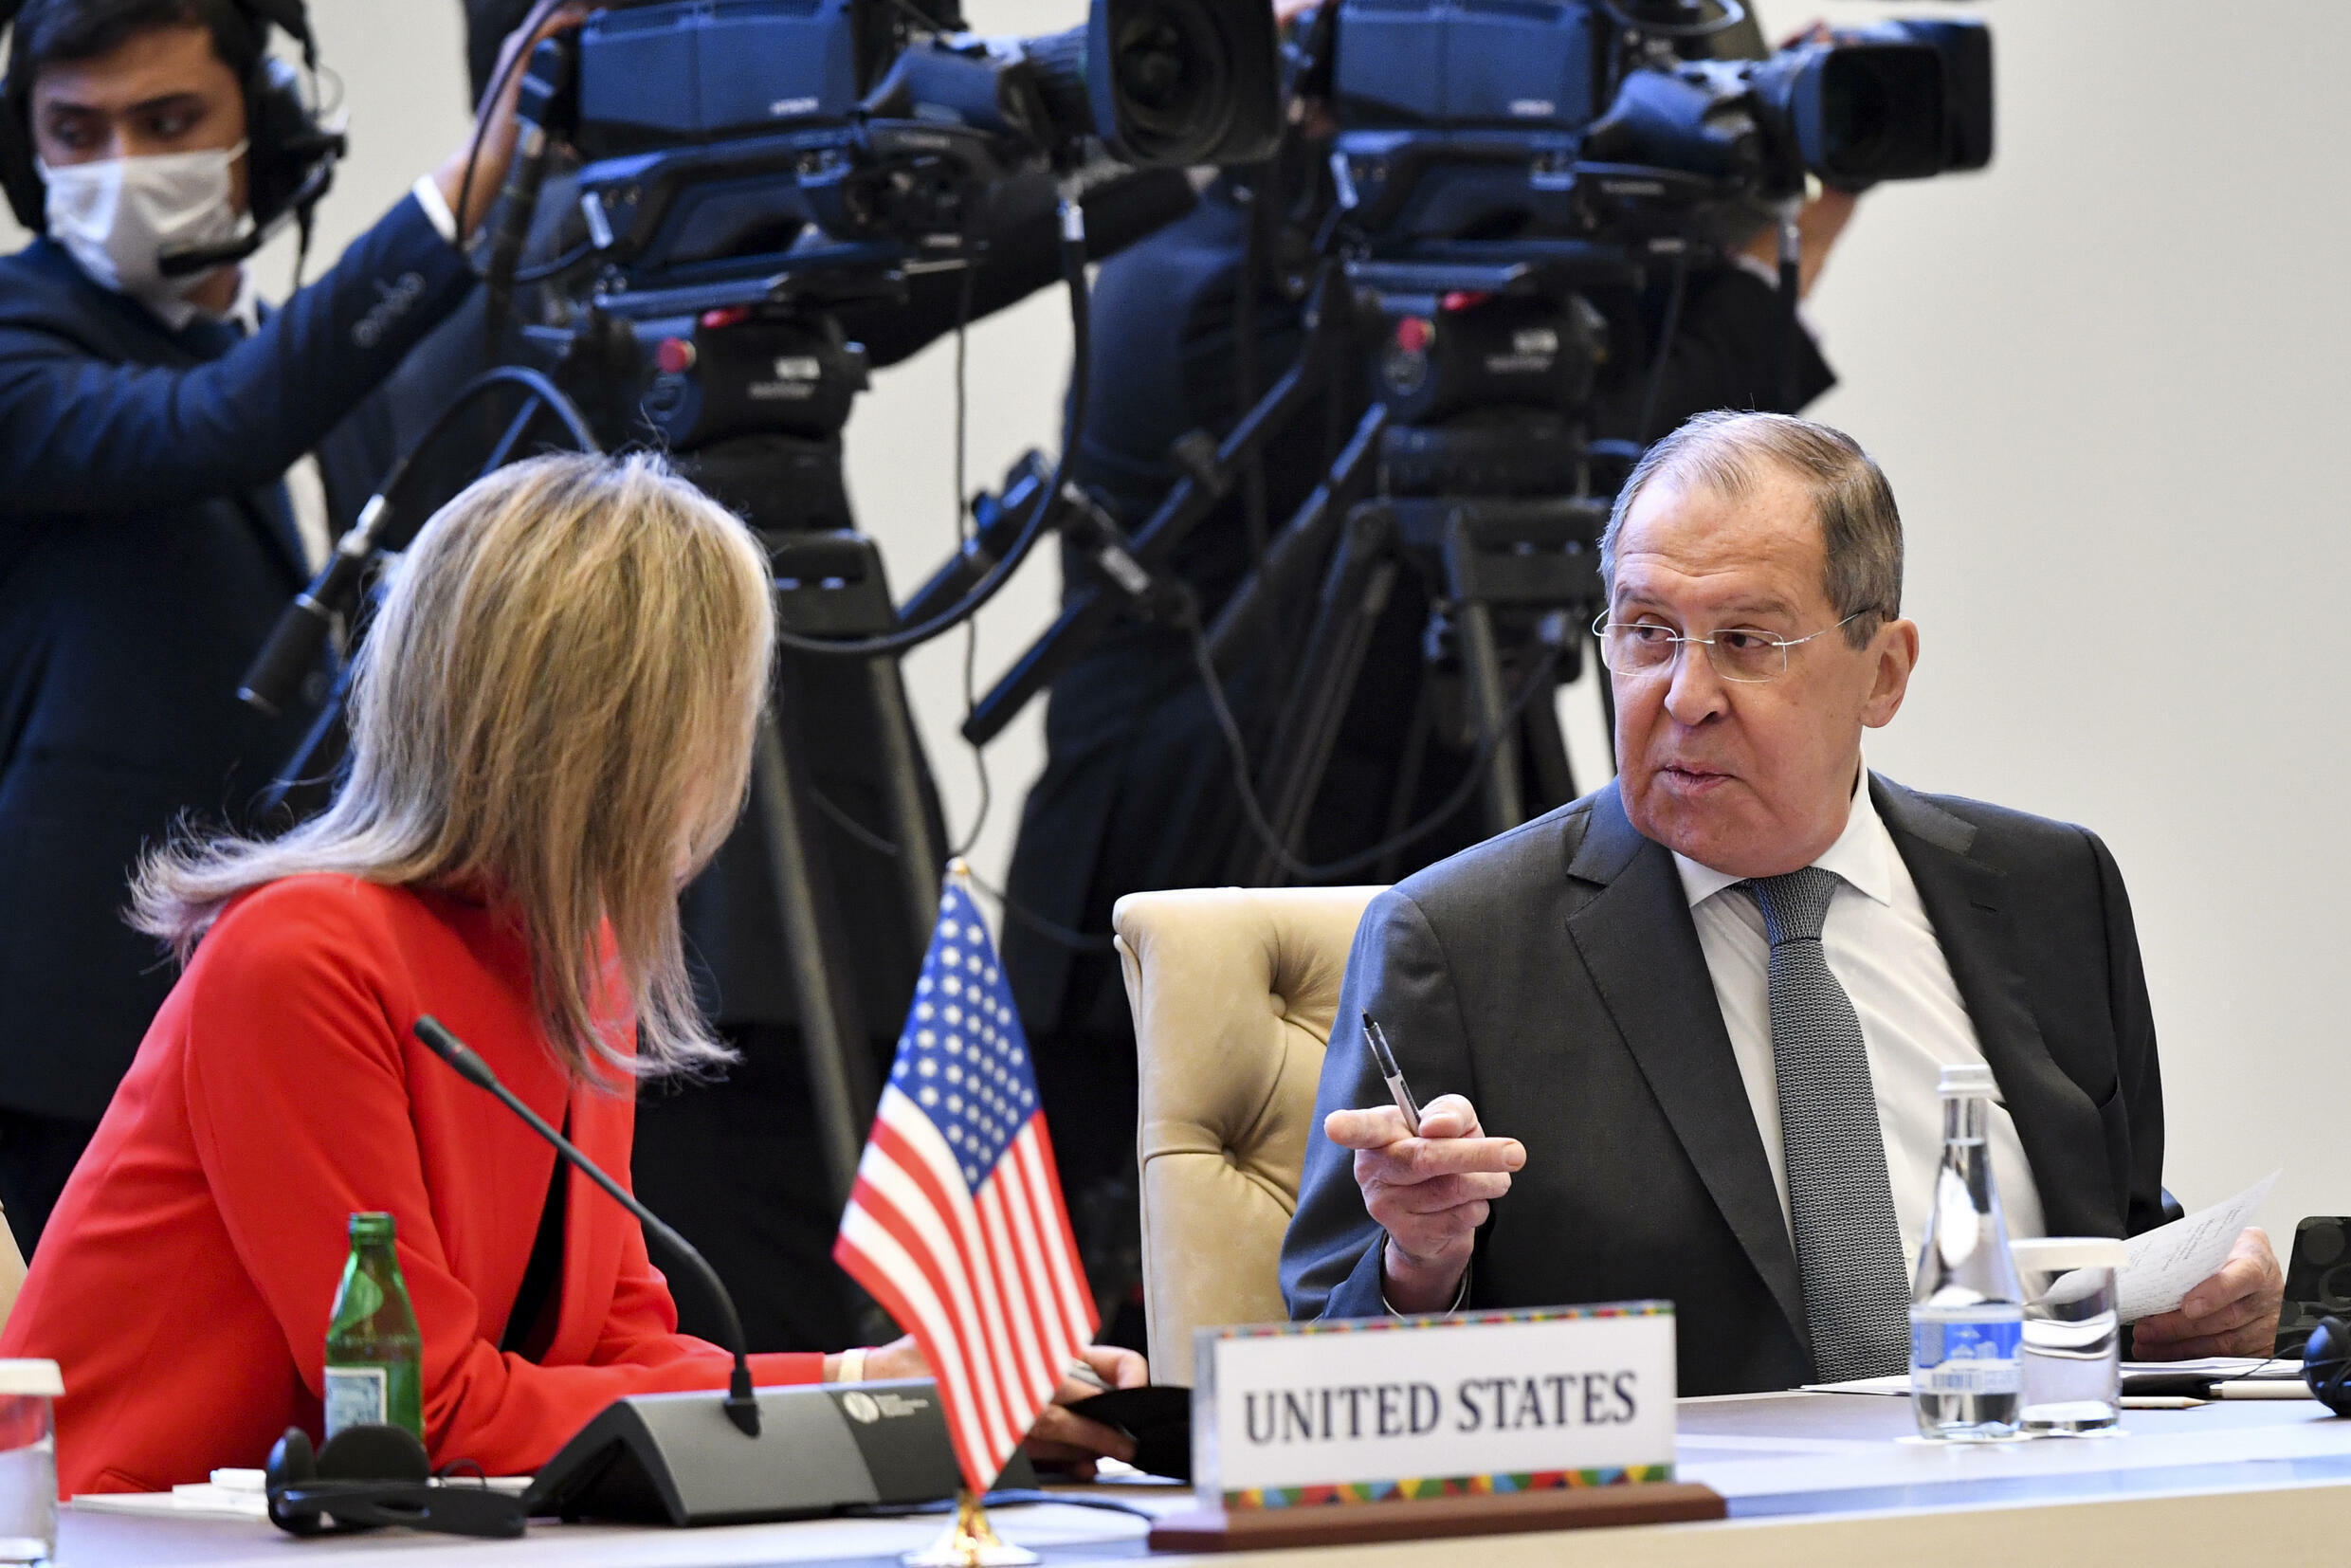 Lavrov - Central and South Asia 2021 conference in Tashkent, Uzbekistan, Friday, July 16, 2021